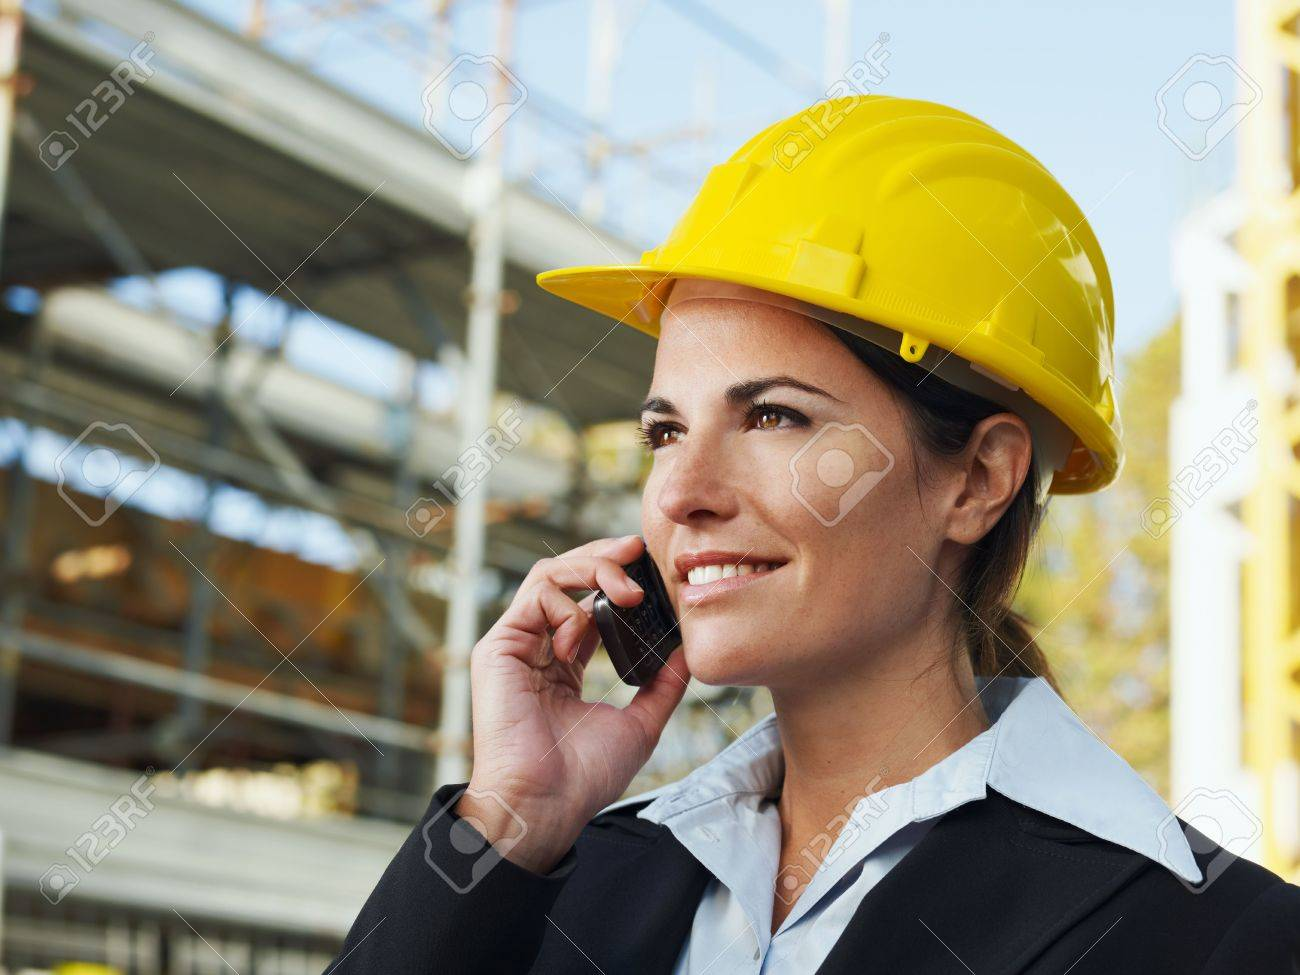 female engineer talking on mobile phone in construction site Stock Photo - 5908912